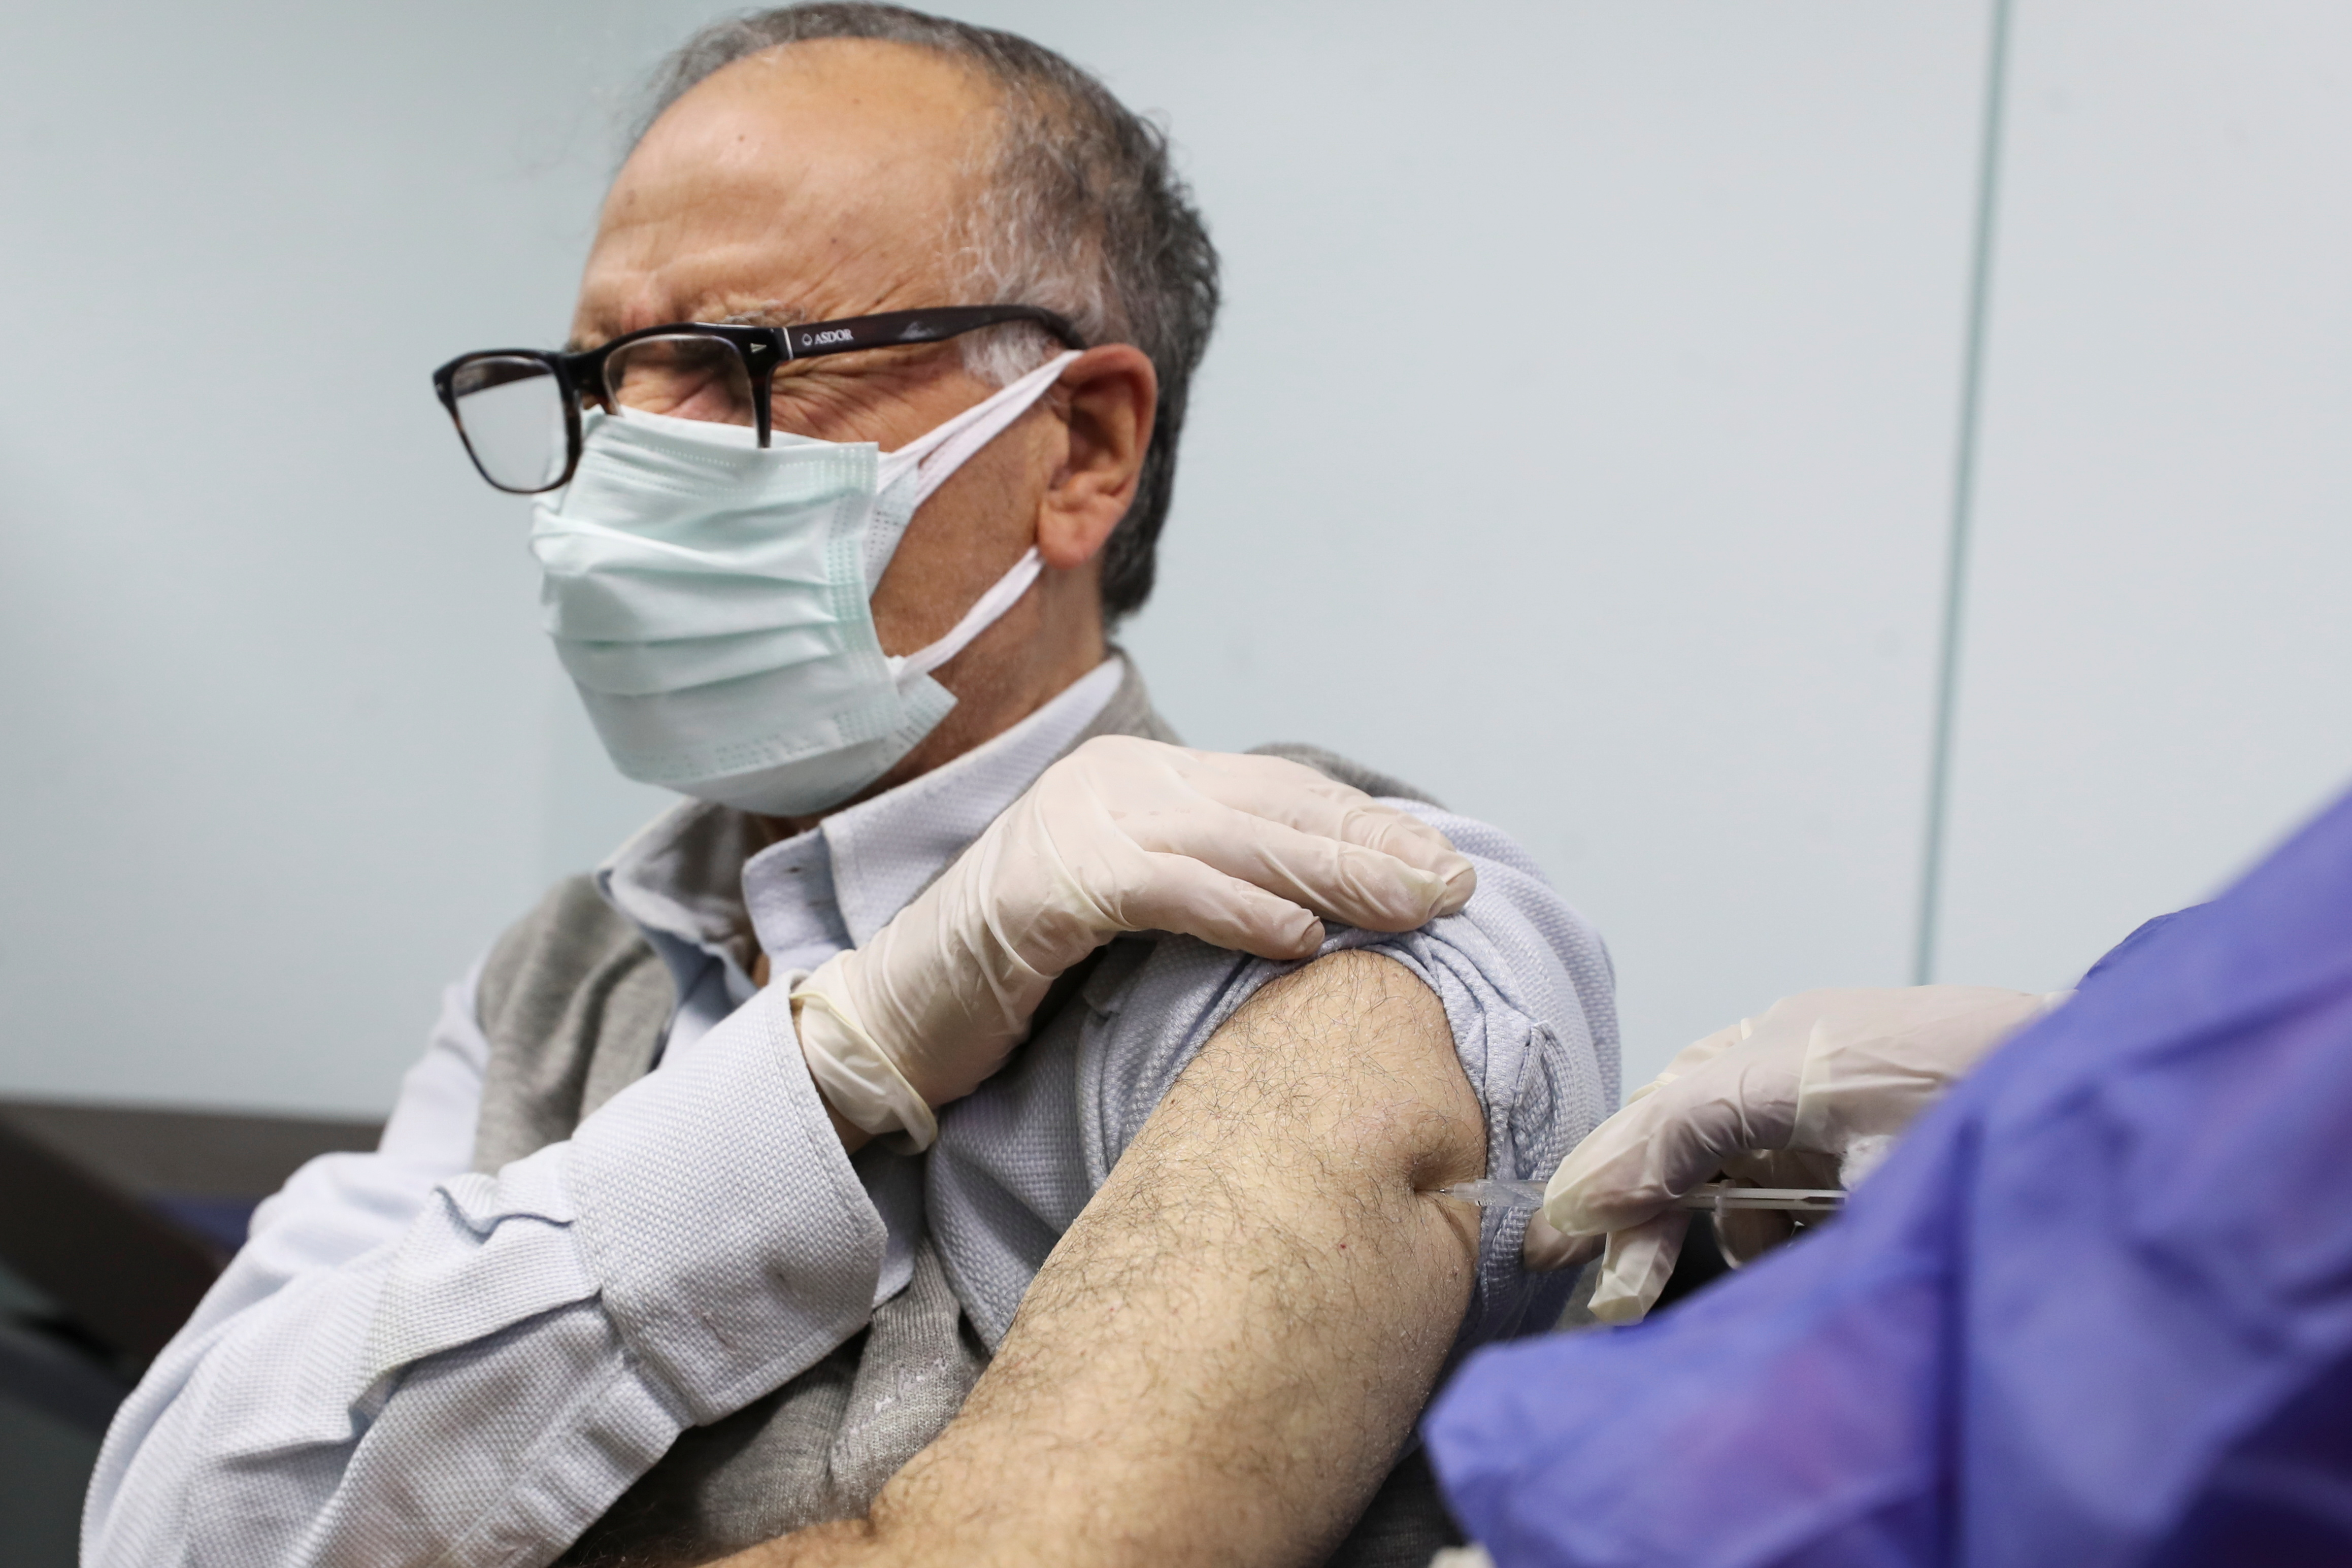 A man receives a dose of the AstraZeneca vaccine against the coronavirus disease (COVID-19) in Cairo, Egypt March 4, 2021. REUTERS/Mohamed Abd El Ghany